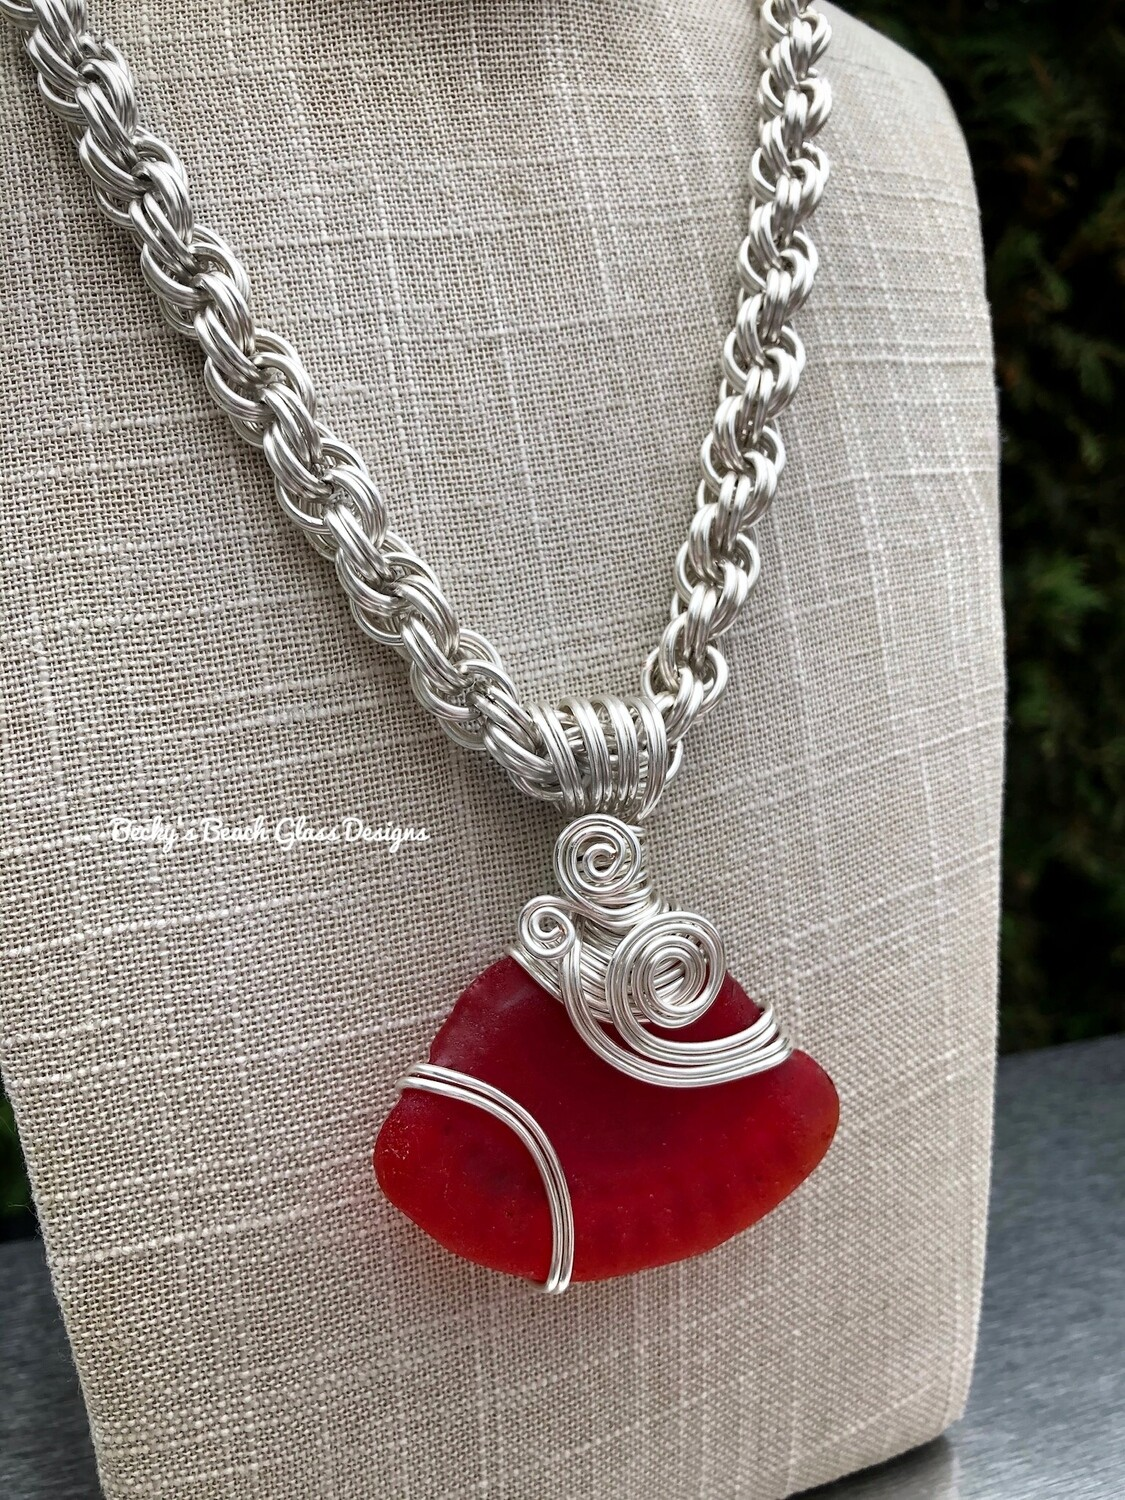 Colossal Red Sea Glass Necklace W/Handmade Chain